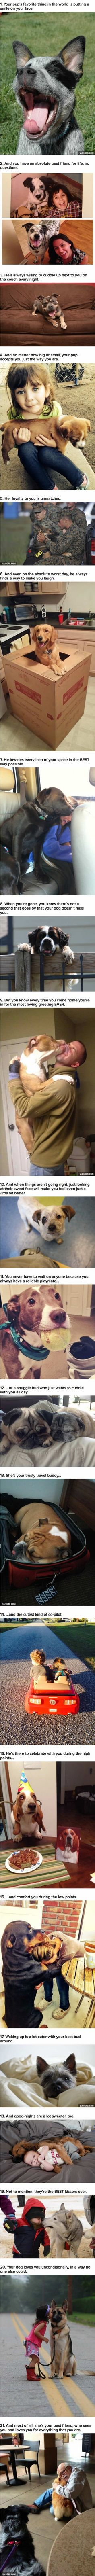 21 Reasons You Should Be Thankful For Your Dog